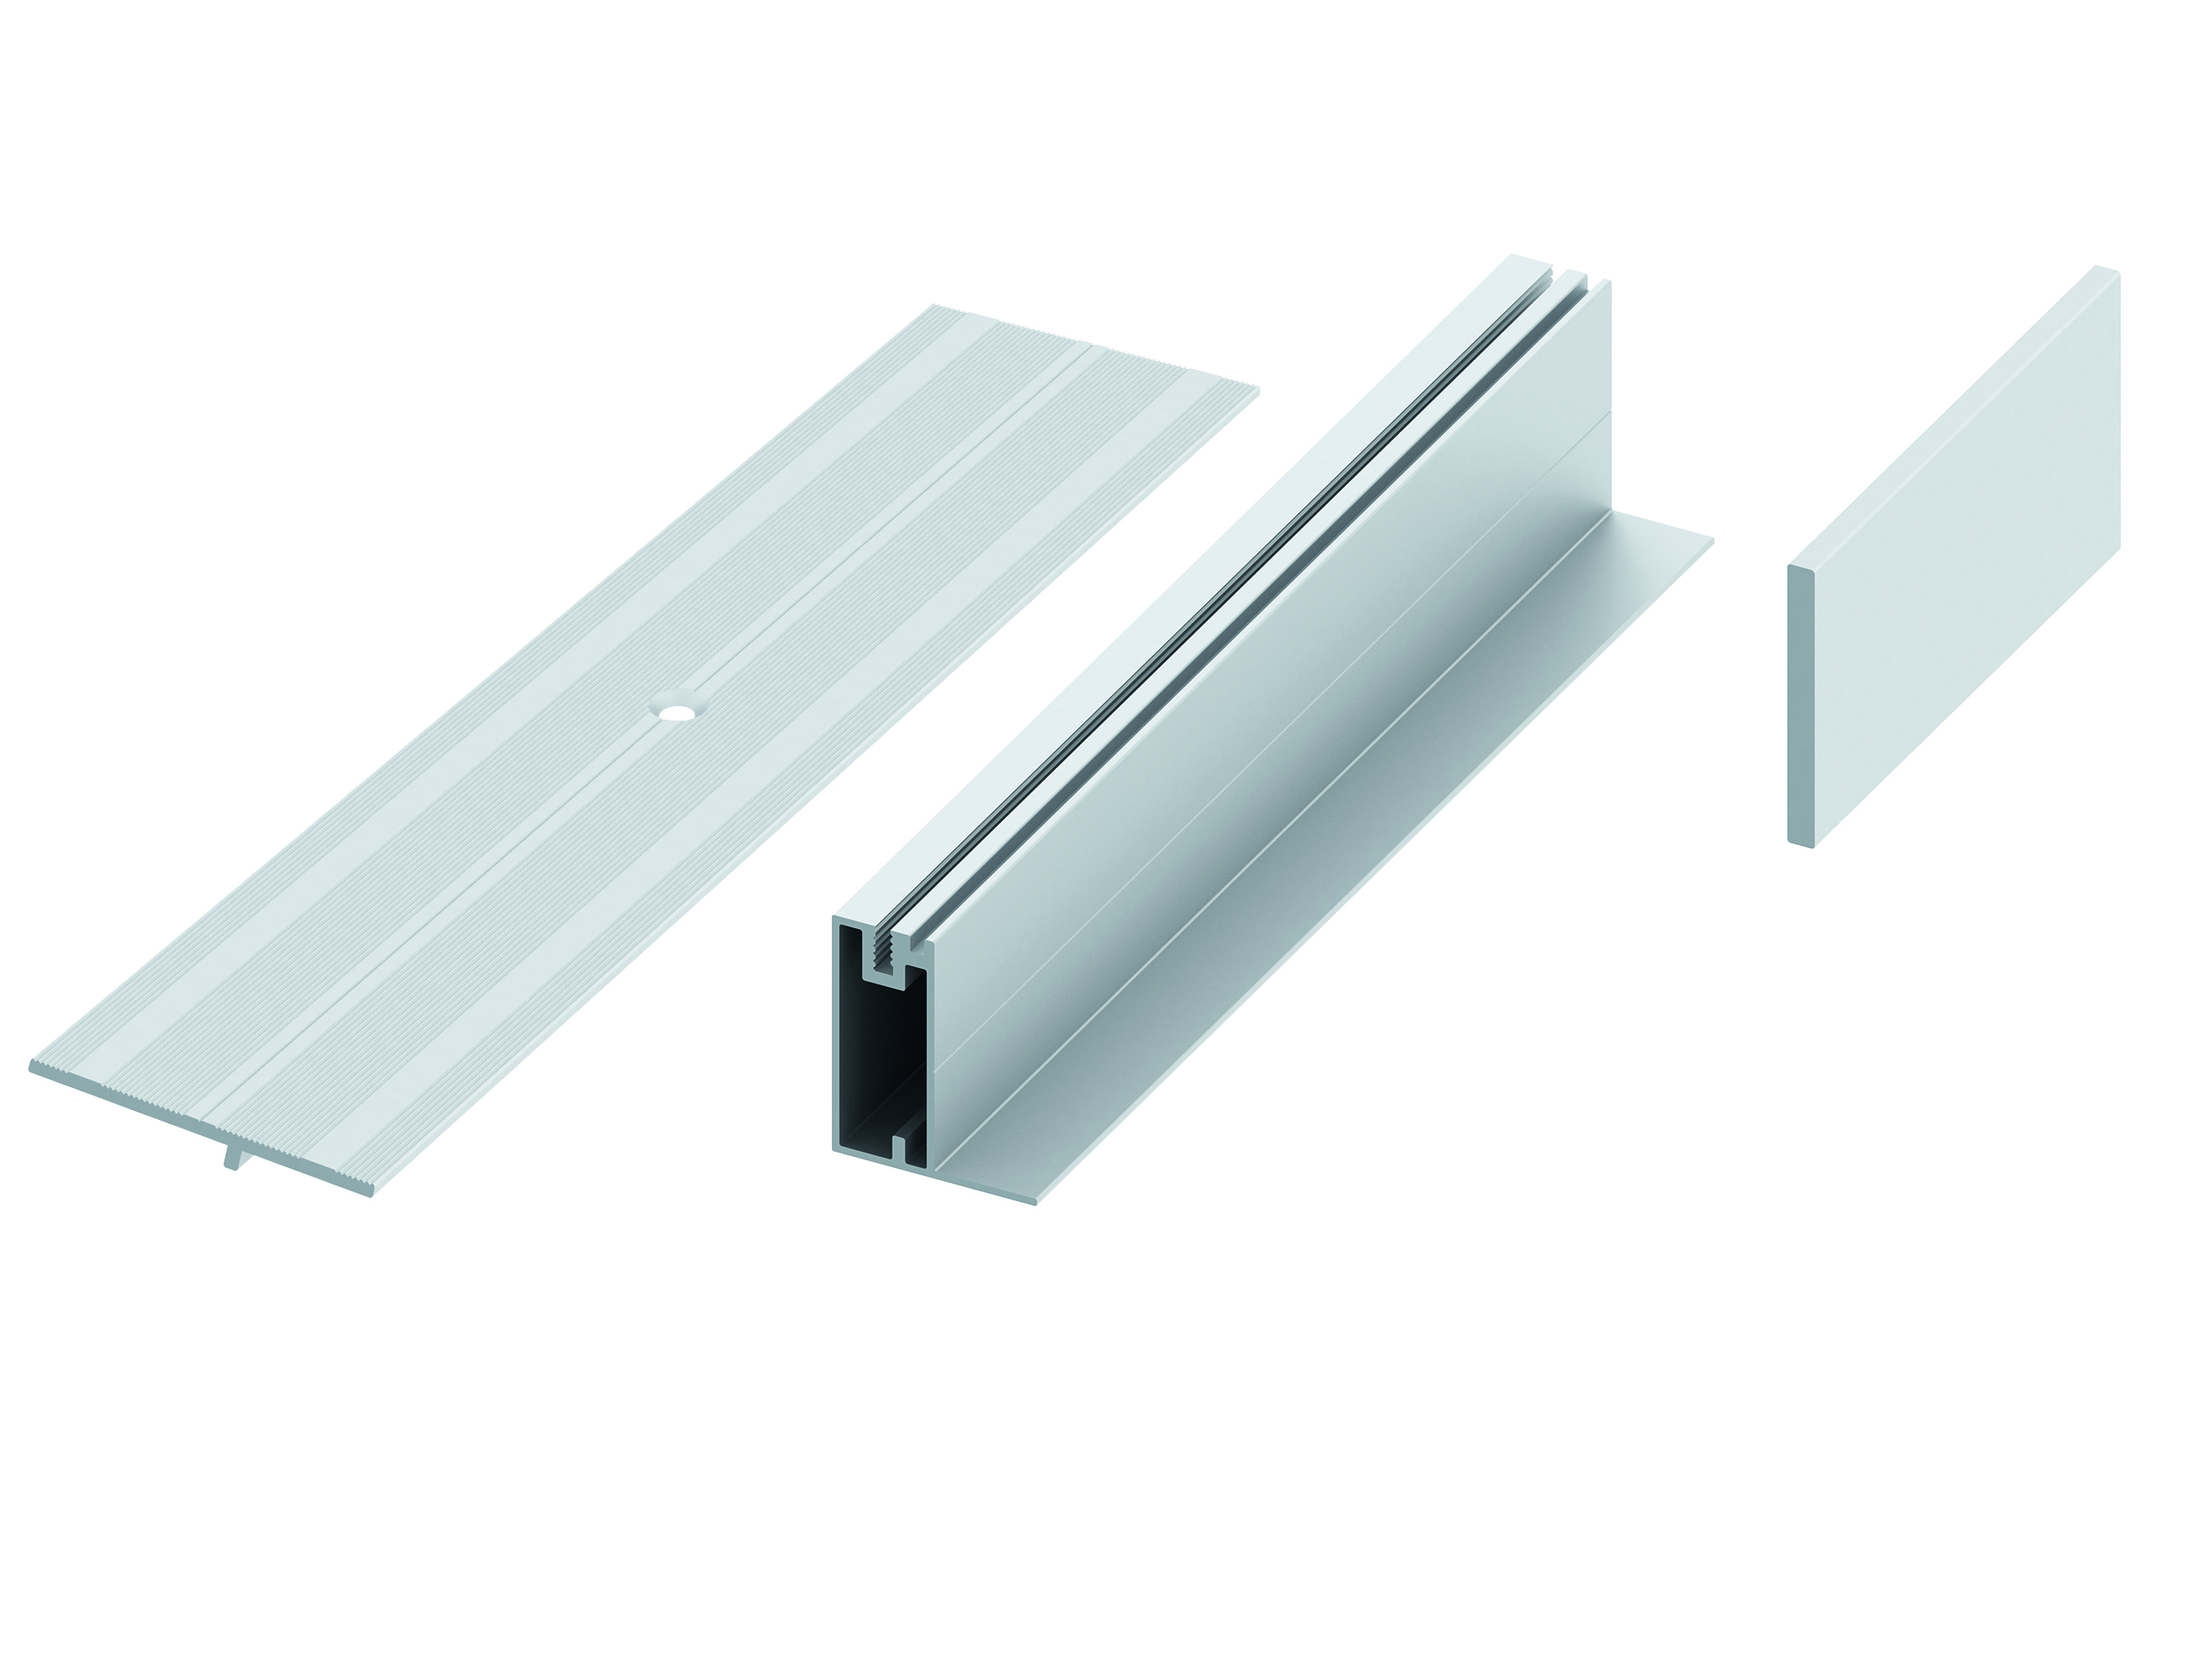 Versatile aluminium edgings for the verando terrace decking.